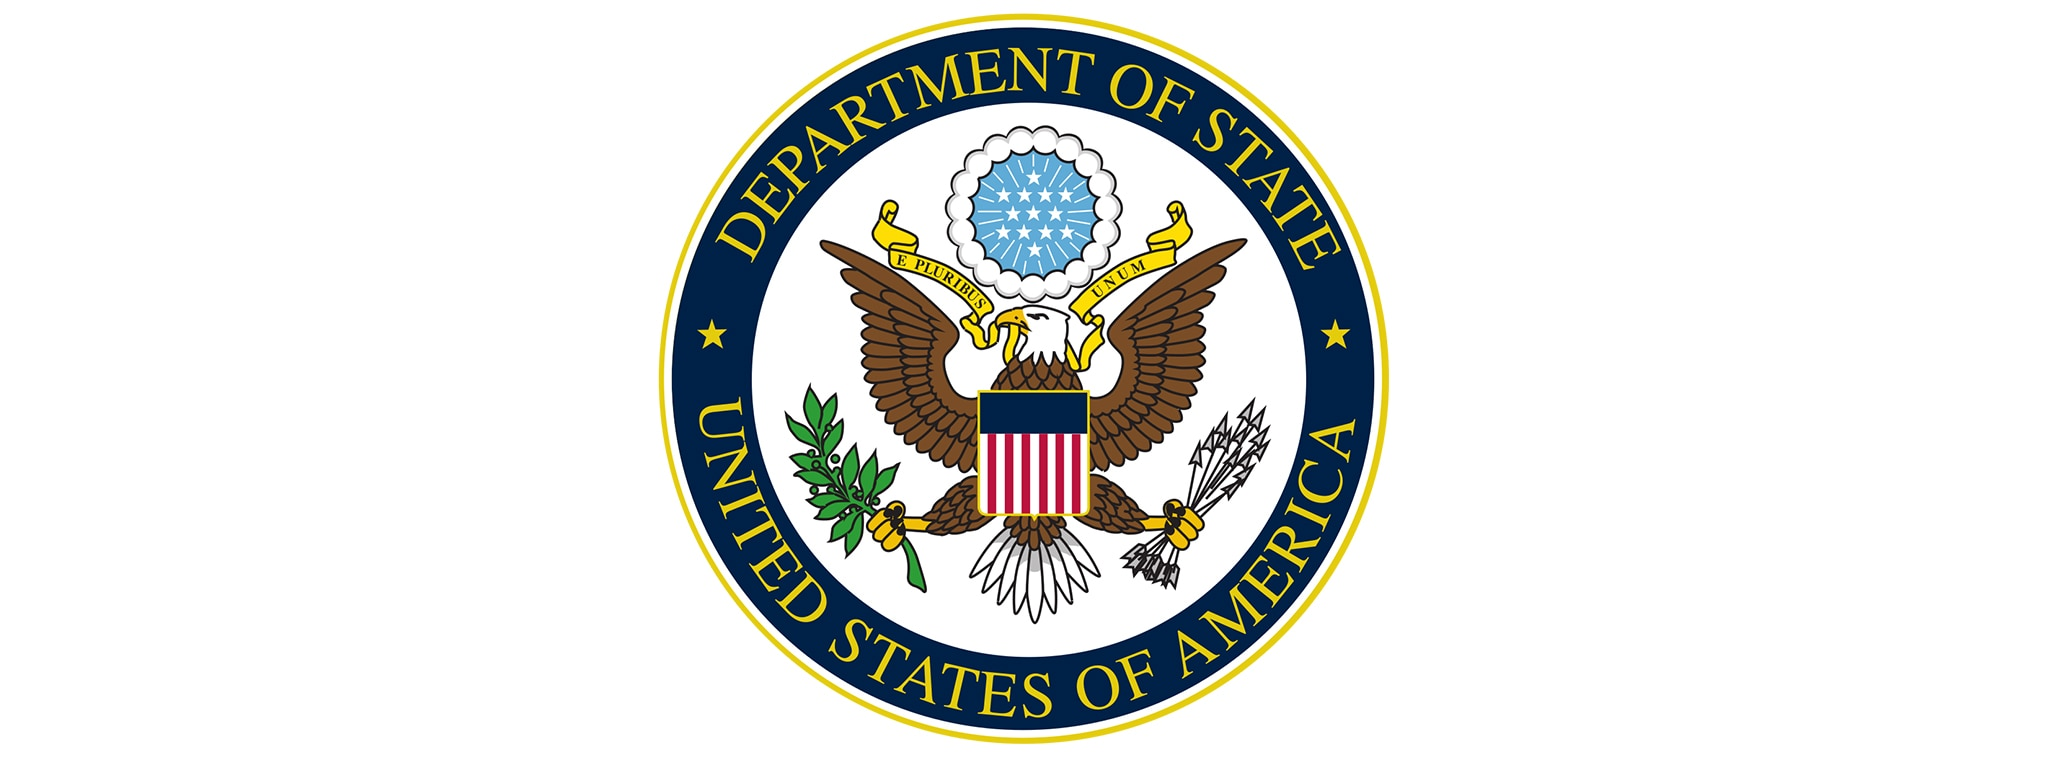 New US Embassy in UK: No perimeter fence, benches for public